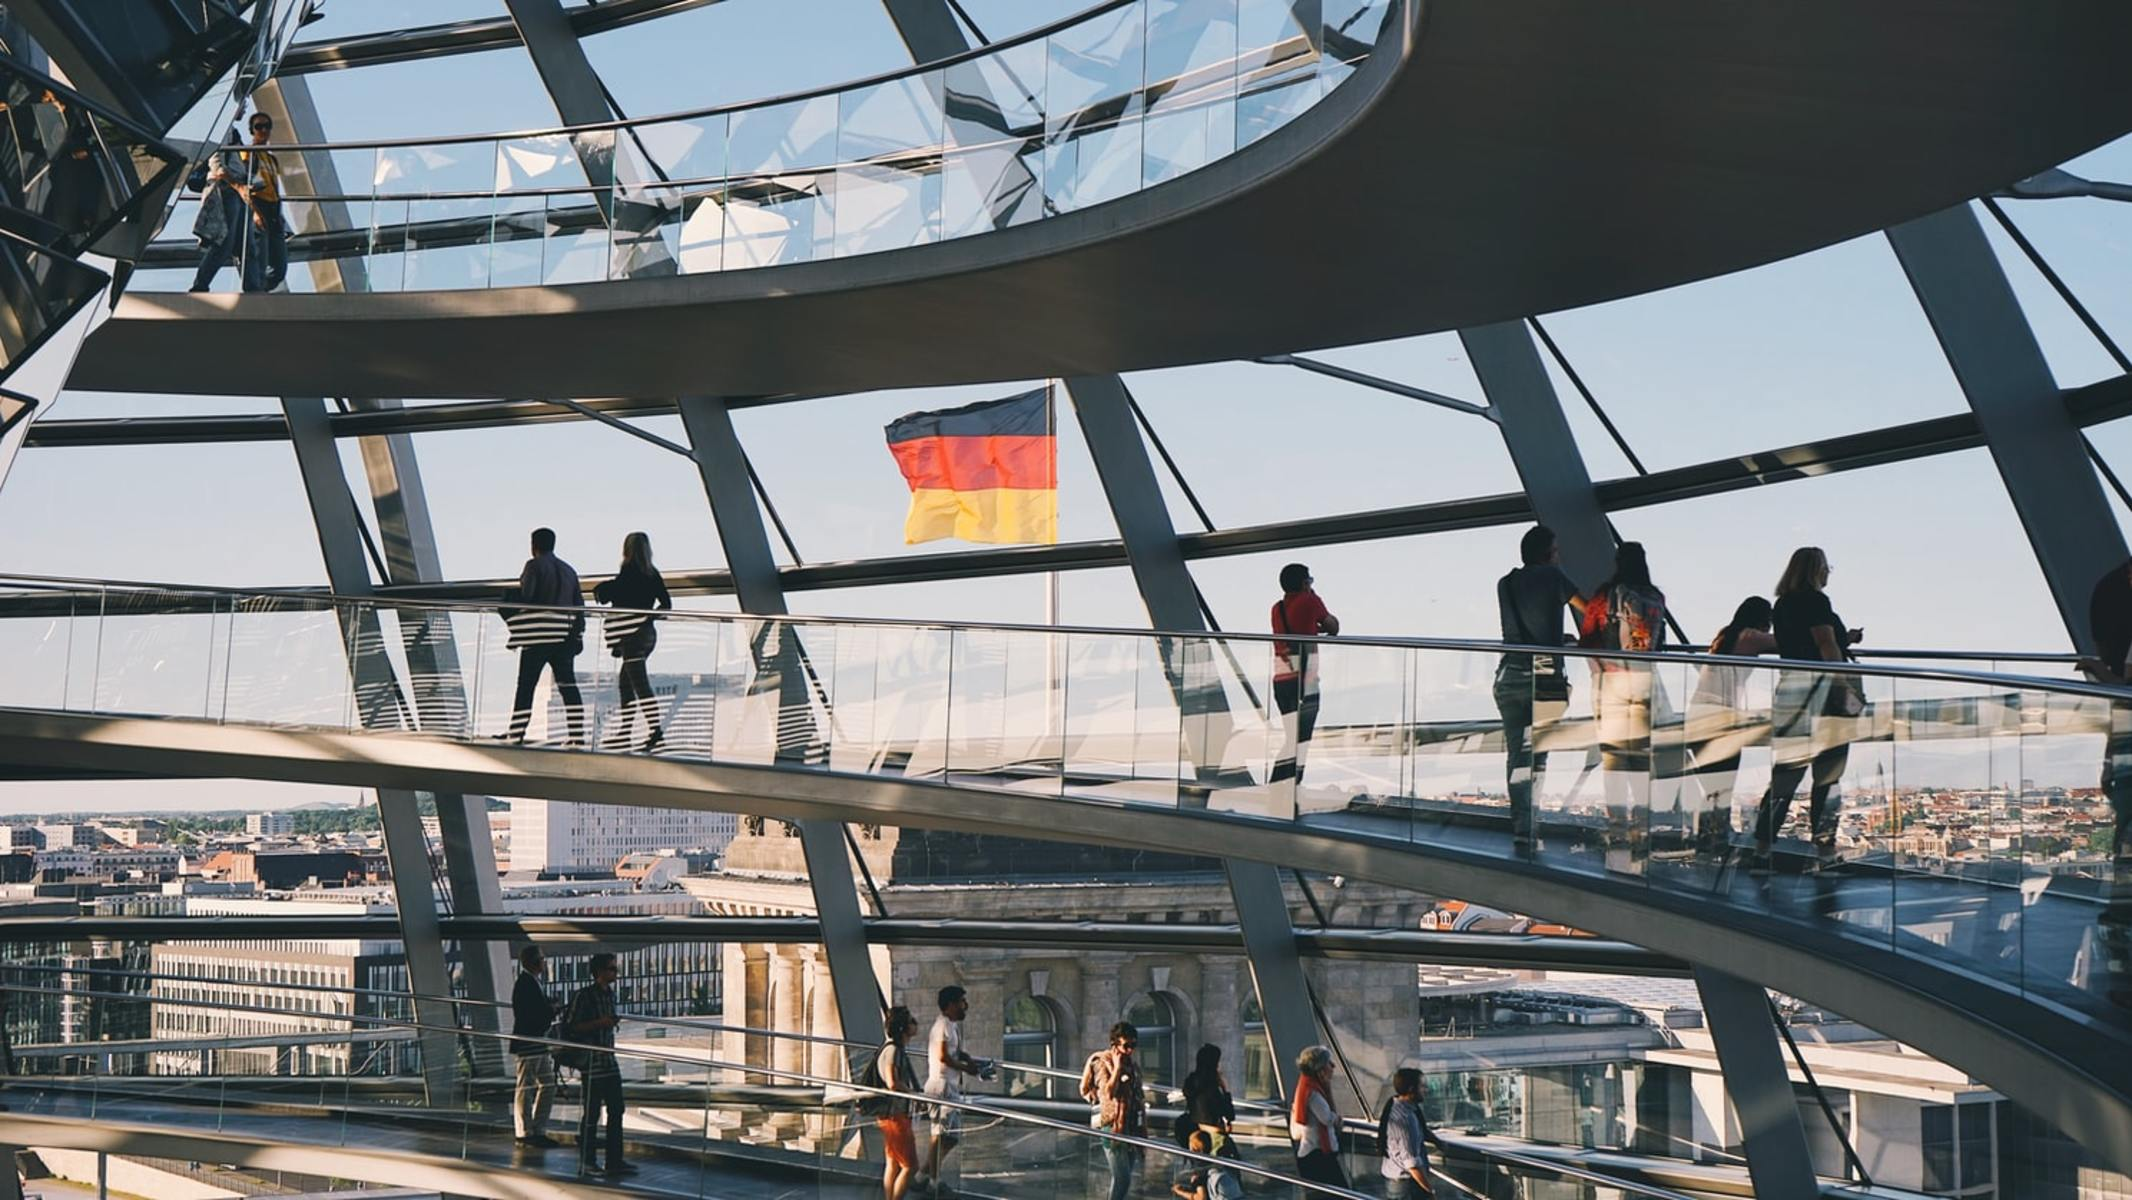 Reichstag and german flag